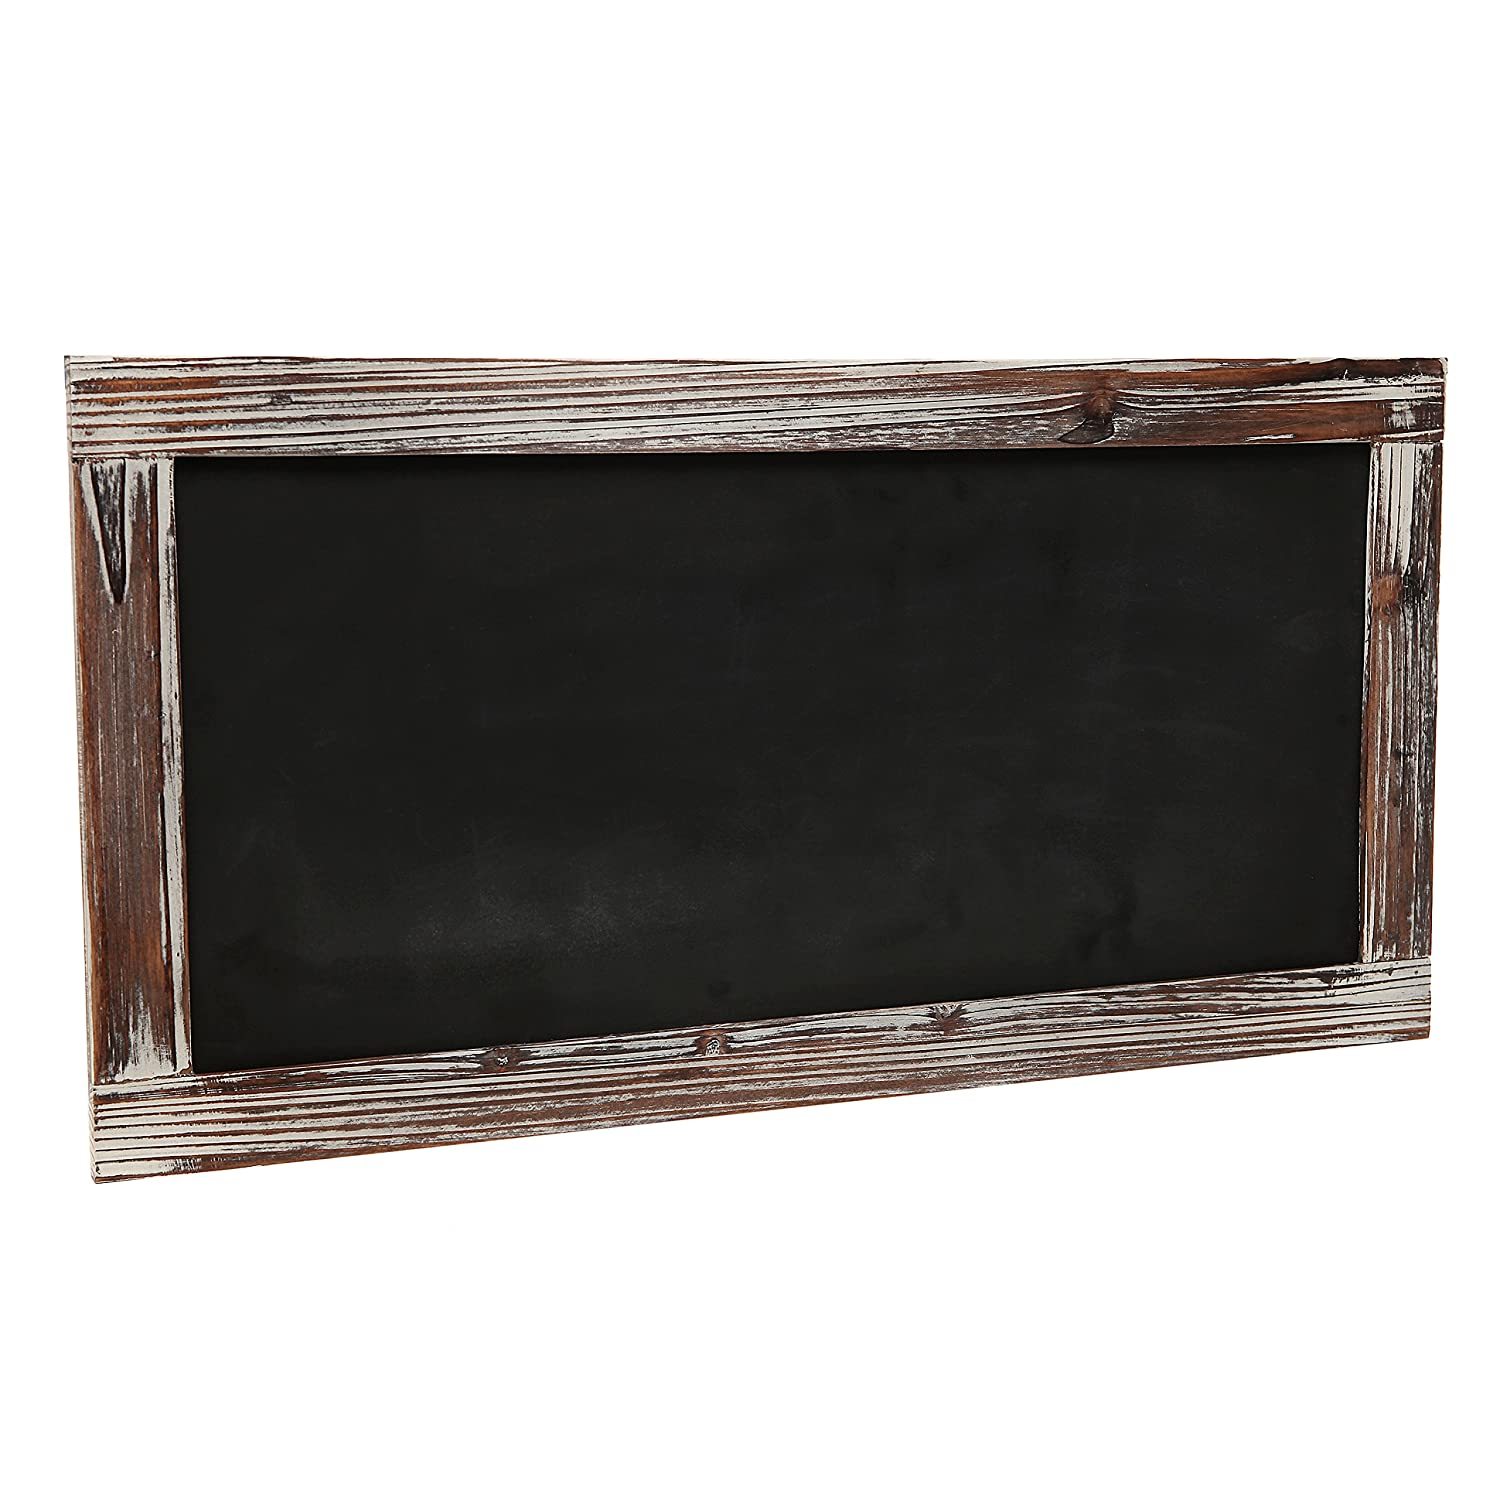 Rustic Erasable Blackboard Message Restaurant Image 2